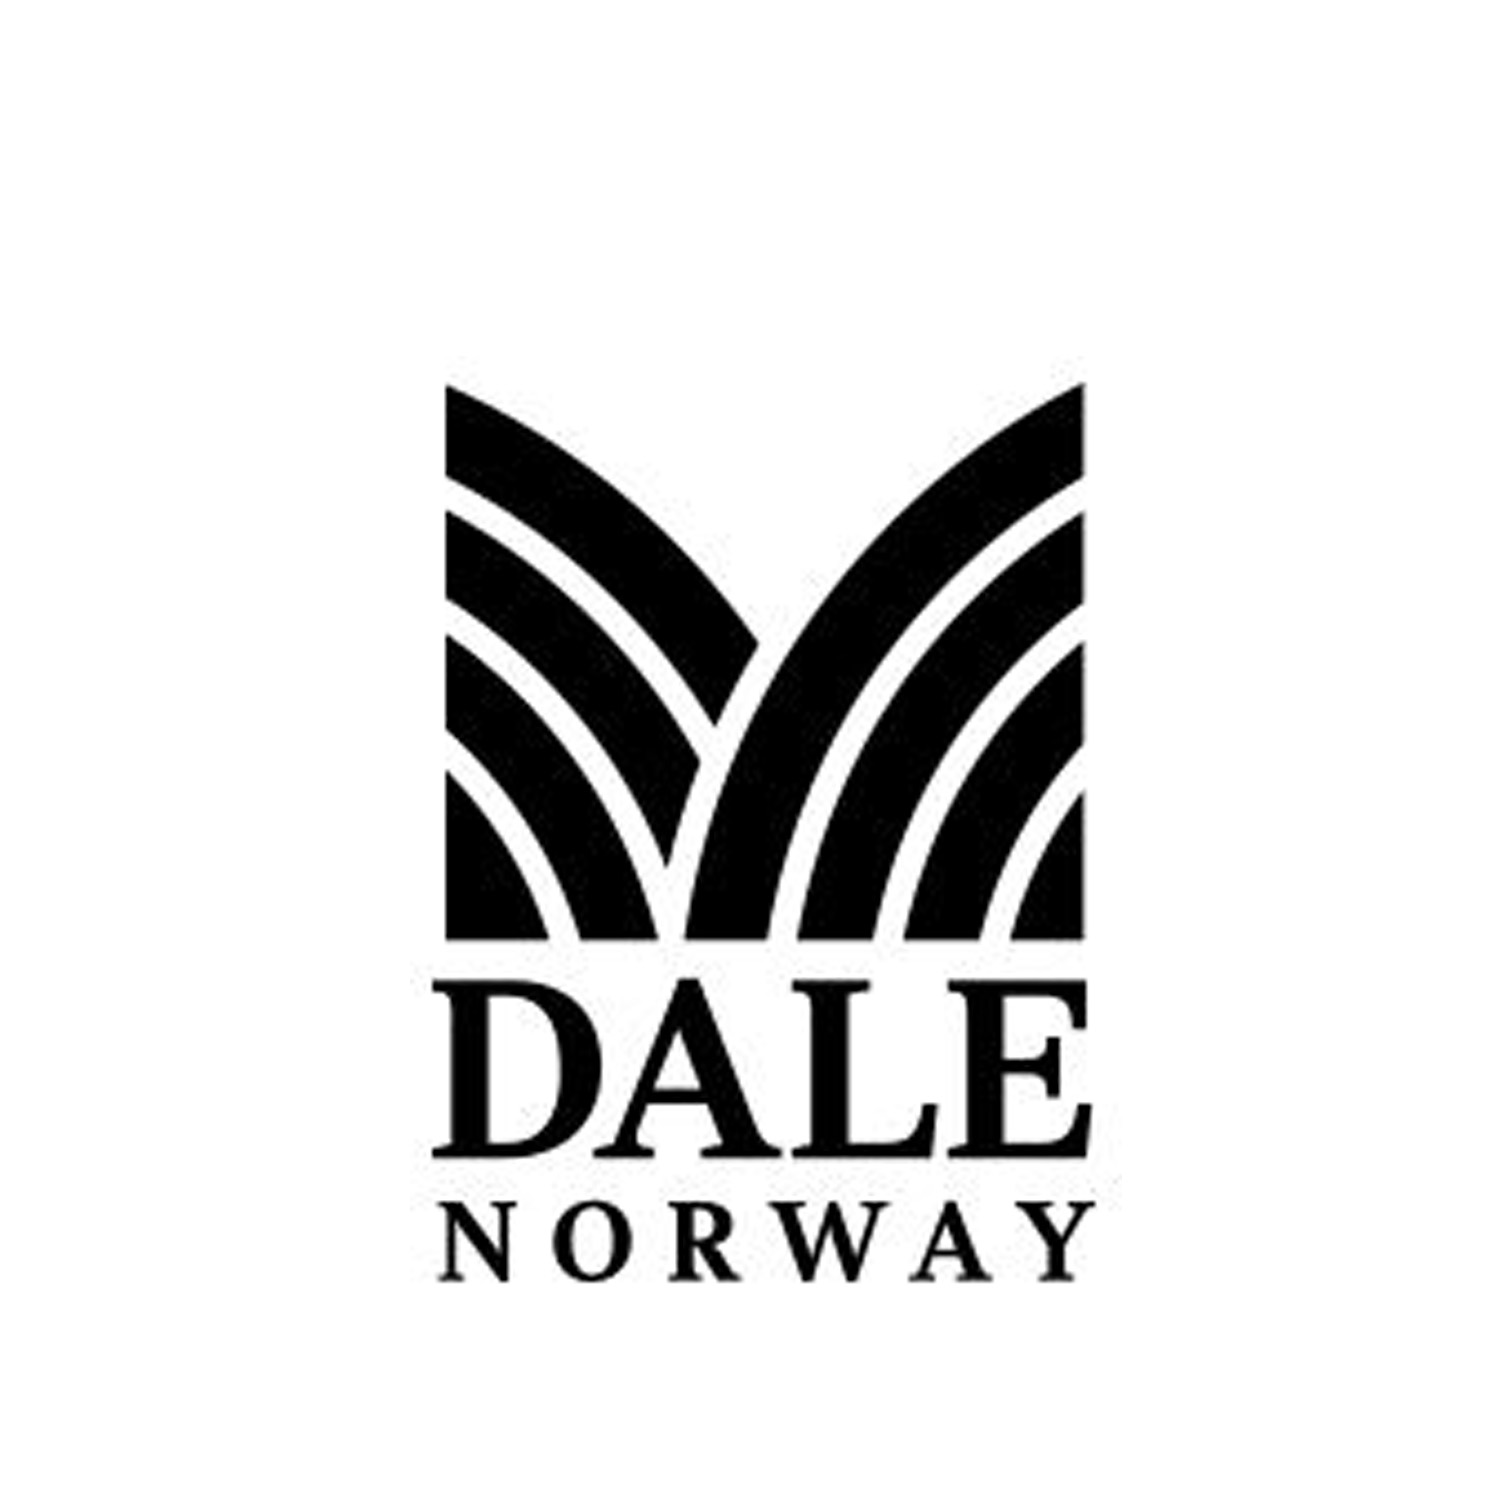 DALE OF NORWAY  Since 1879, their focus remains the same: crafting premium wool qualities. Their exquisite designs exemplify the rich heritage and beauty of Norway. (Norway)